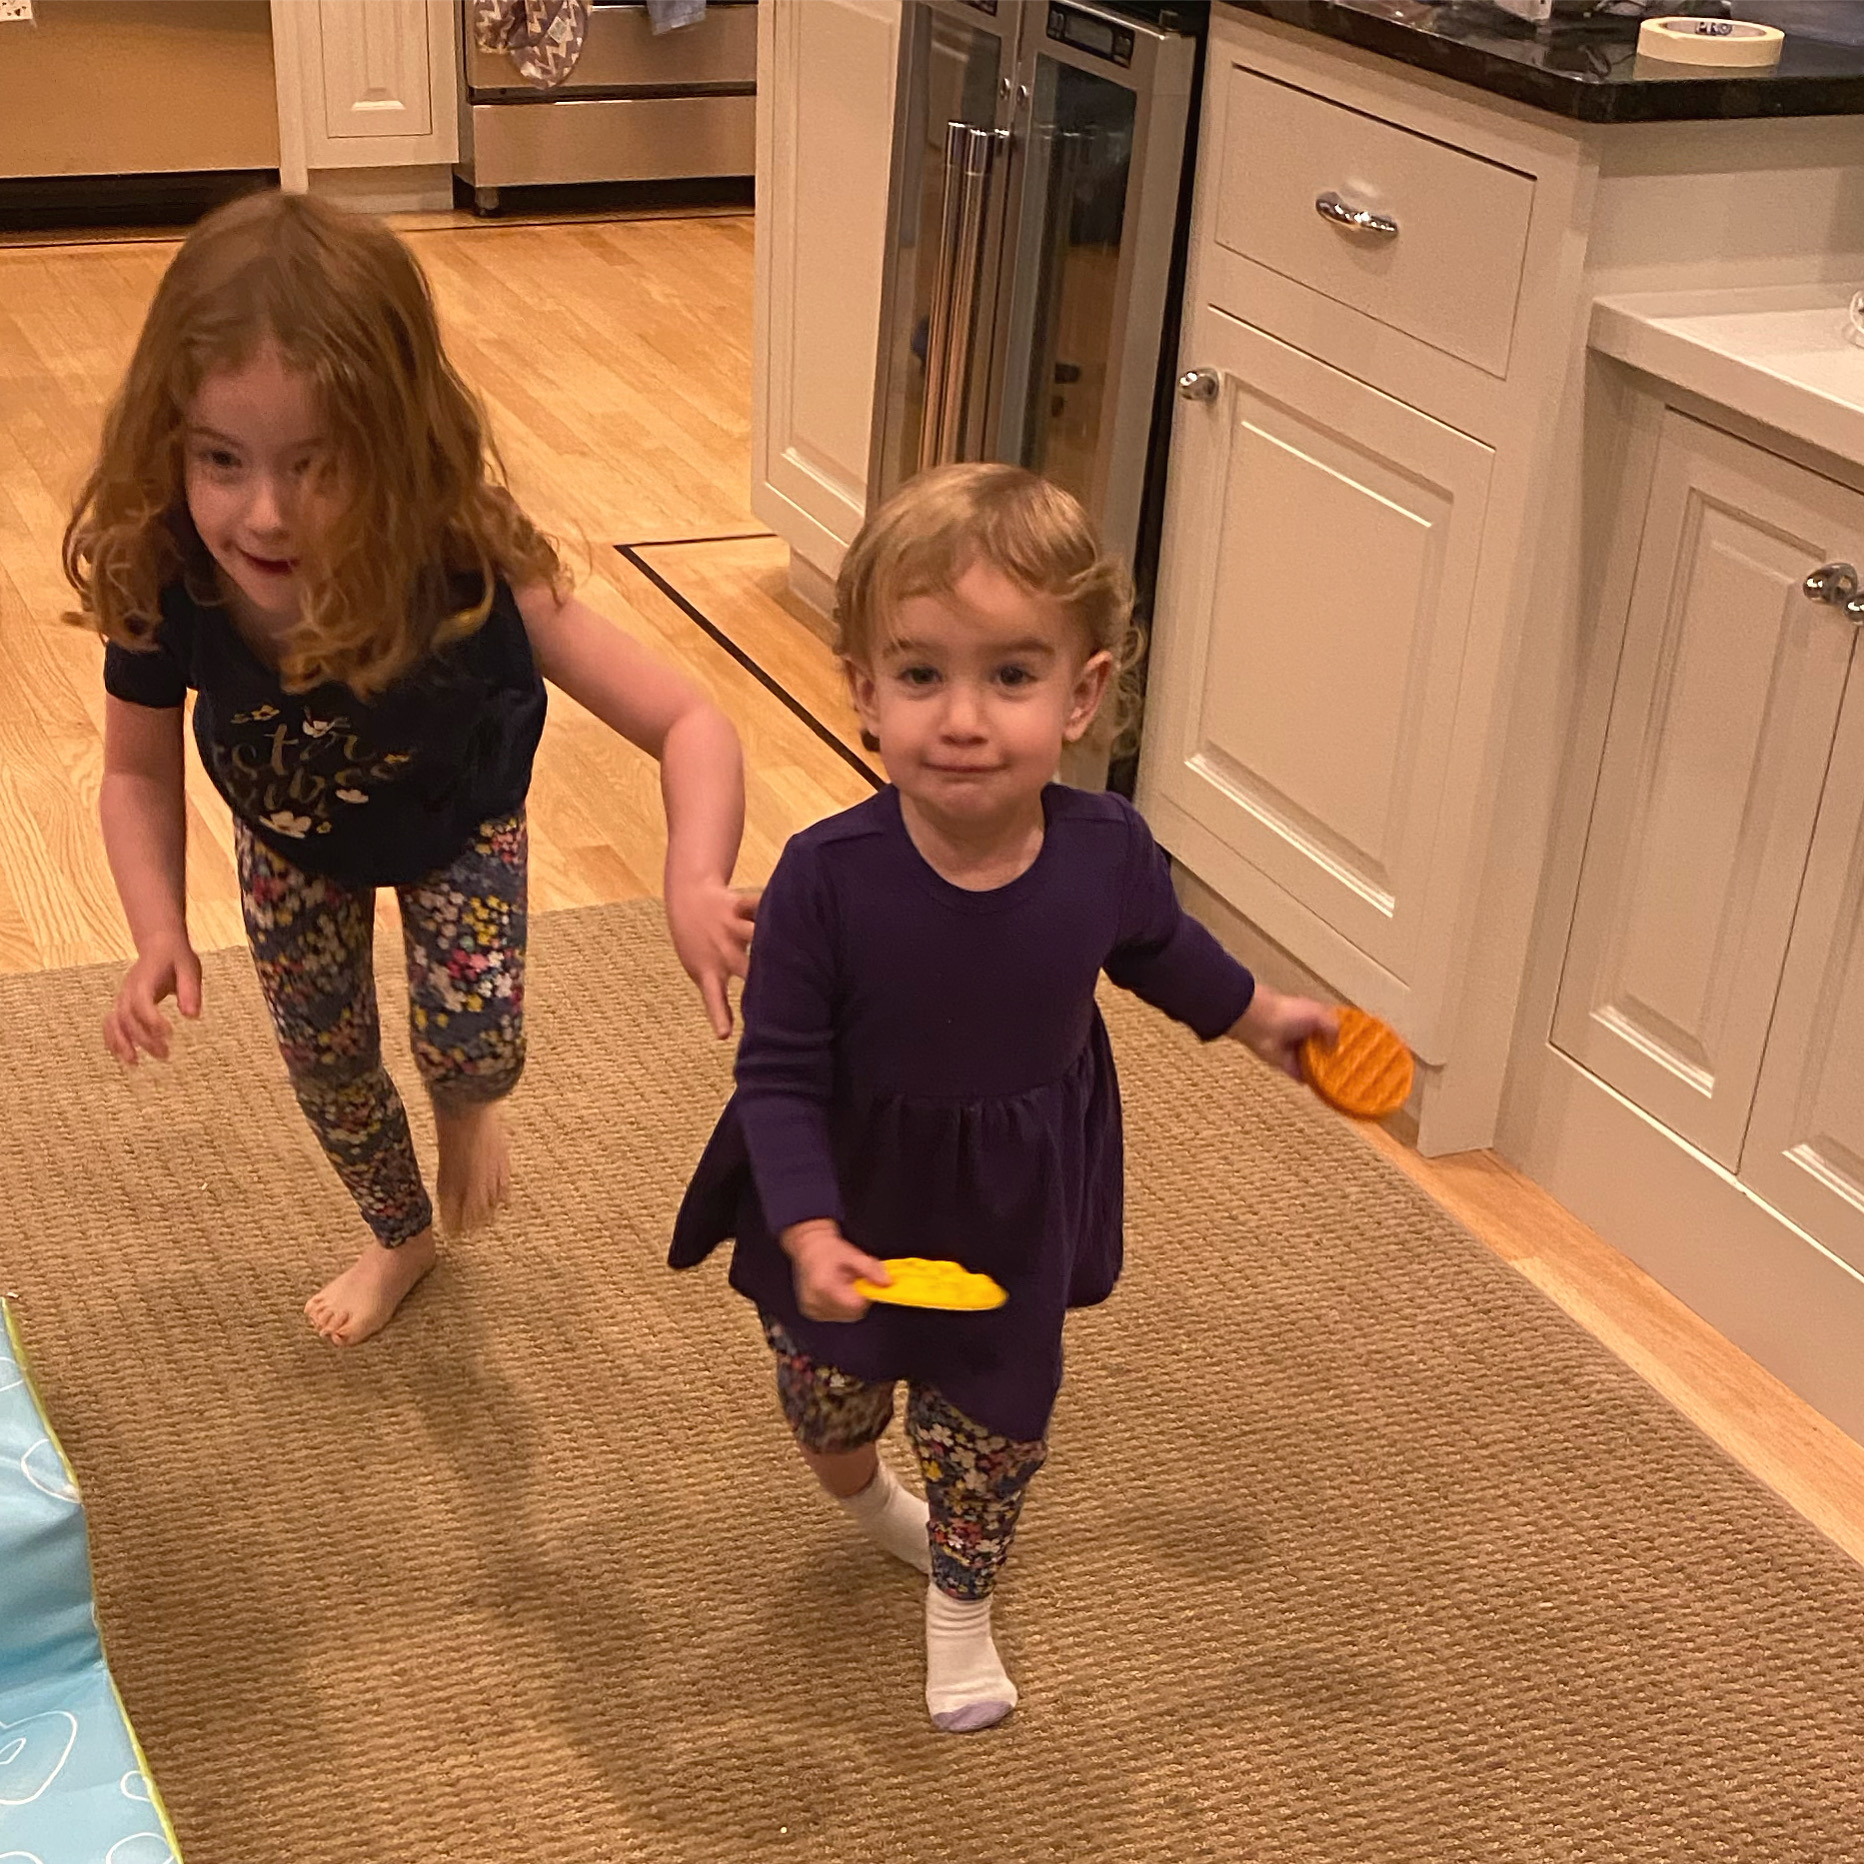 Sara Mauskopf's two daughters run toward the camera through their home's kitchen